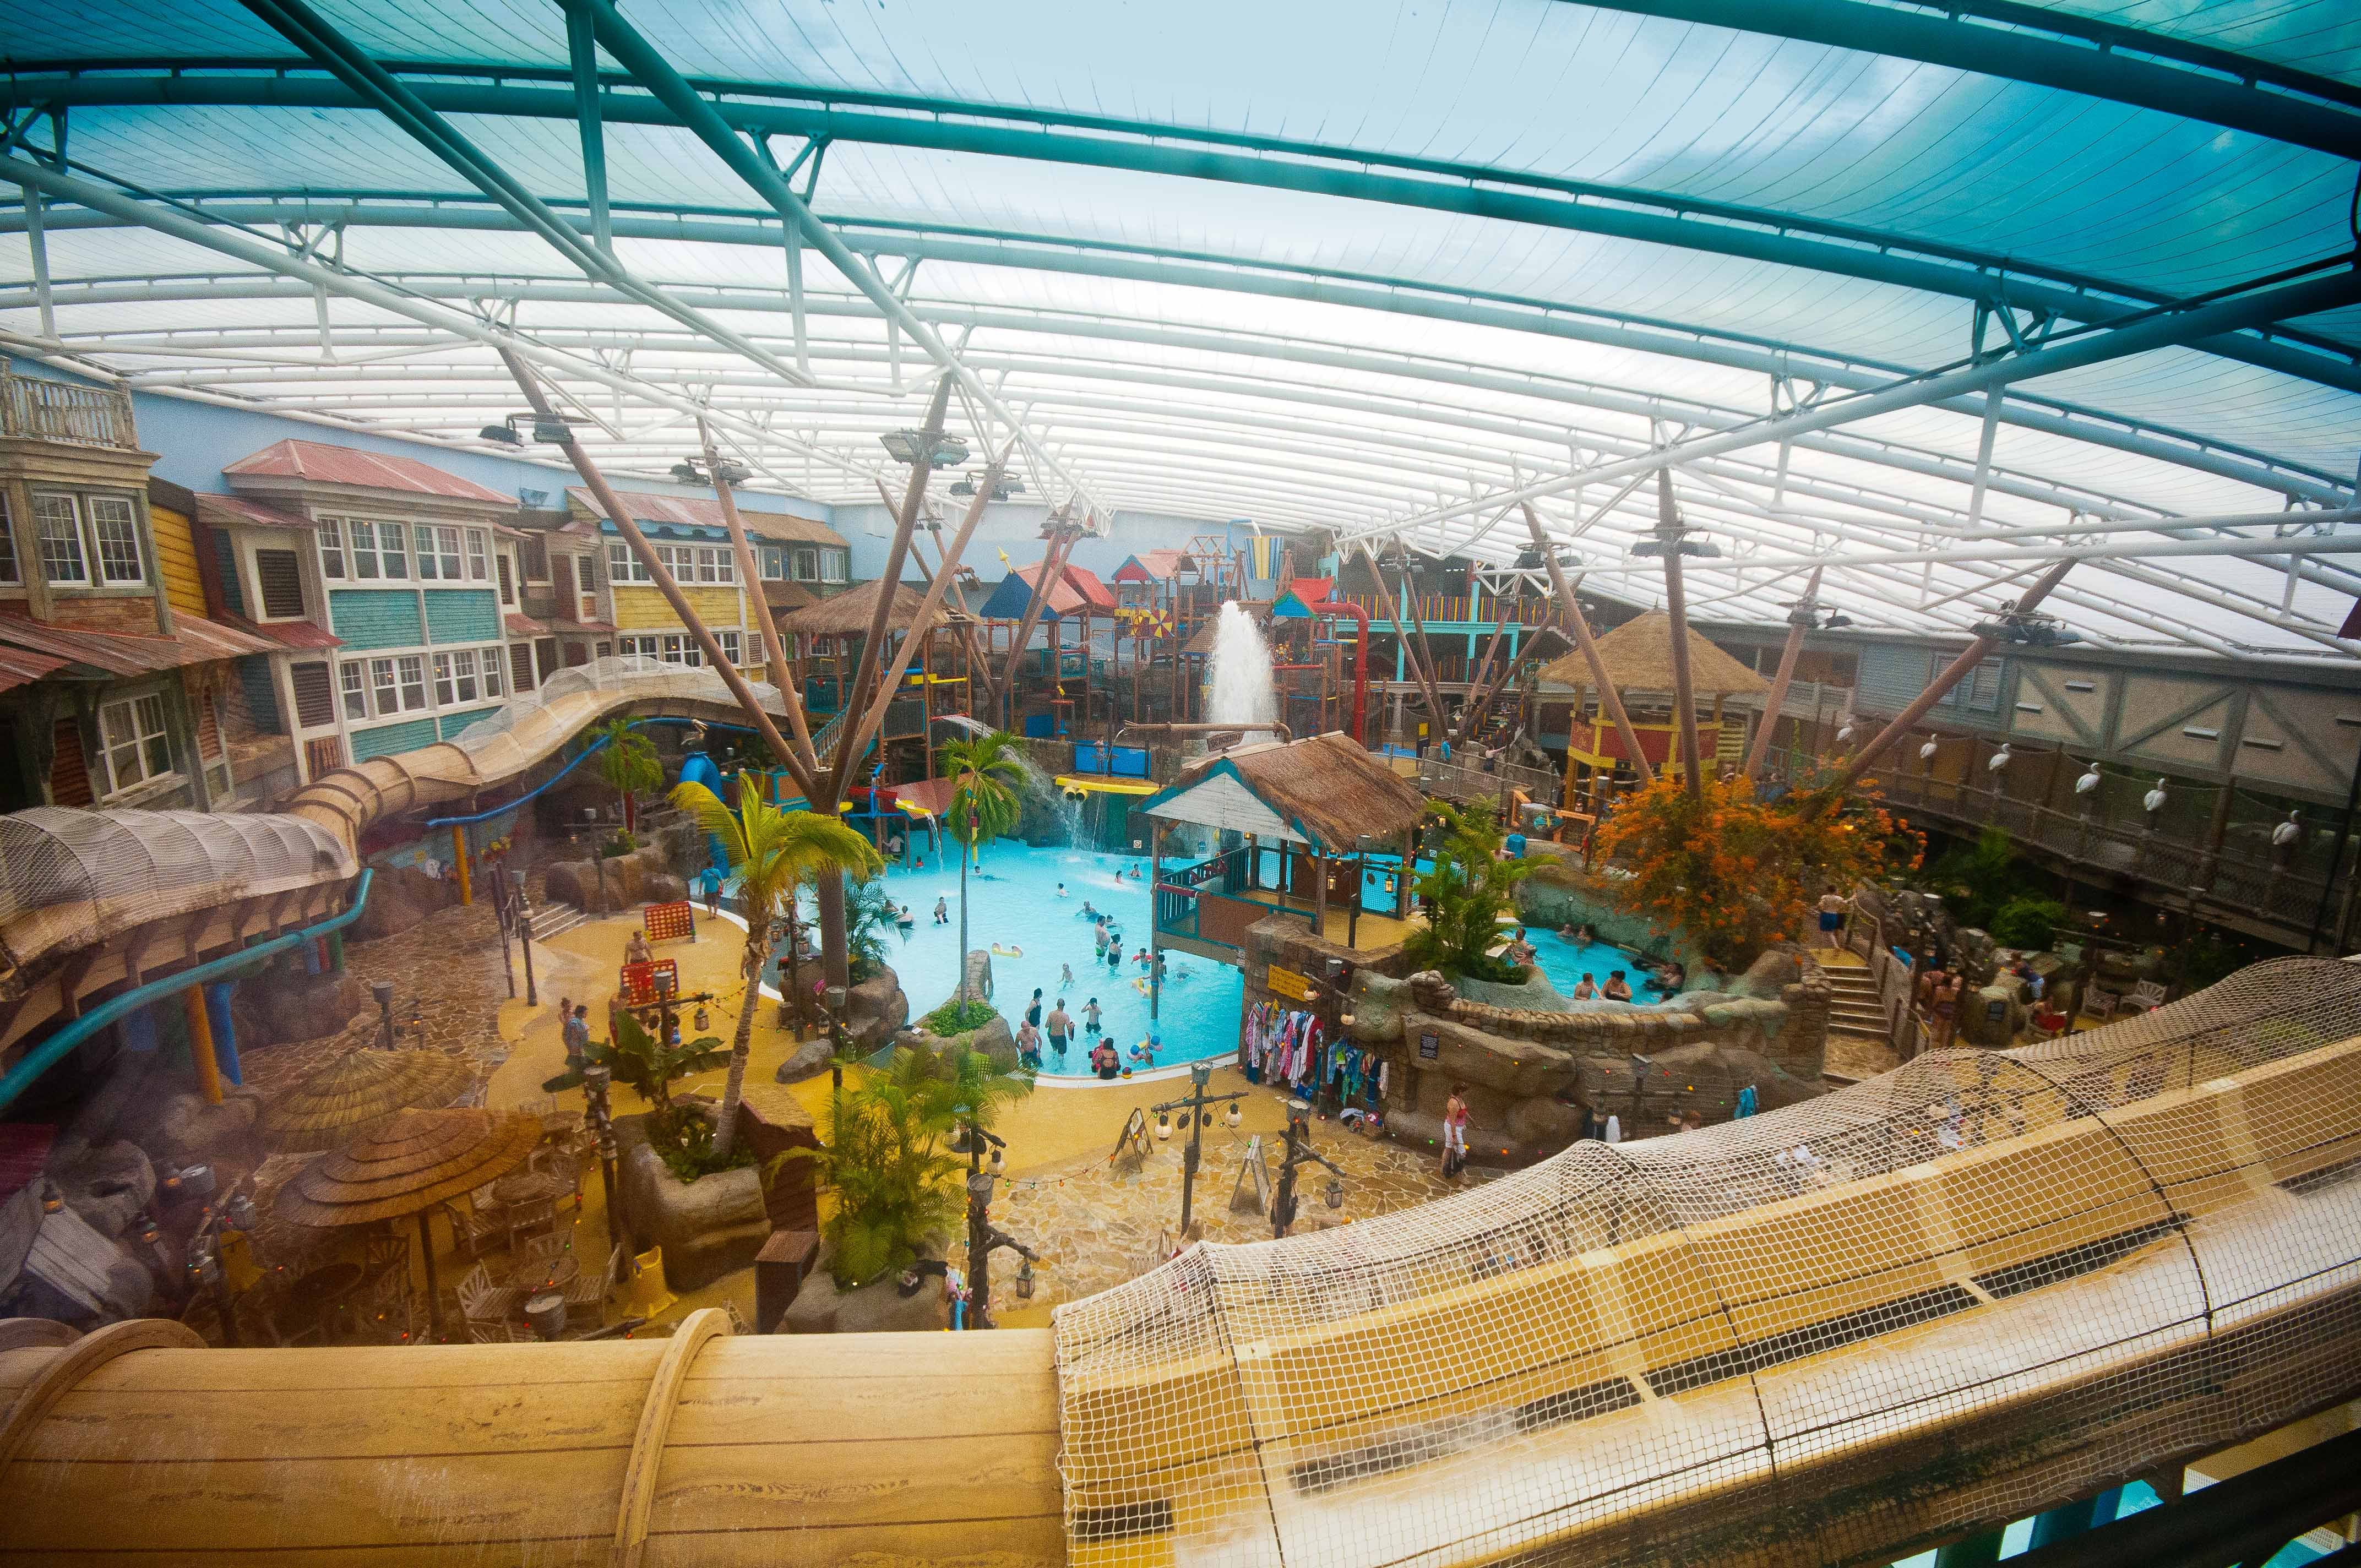 Alton Towers Waterpark Image